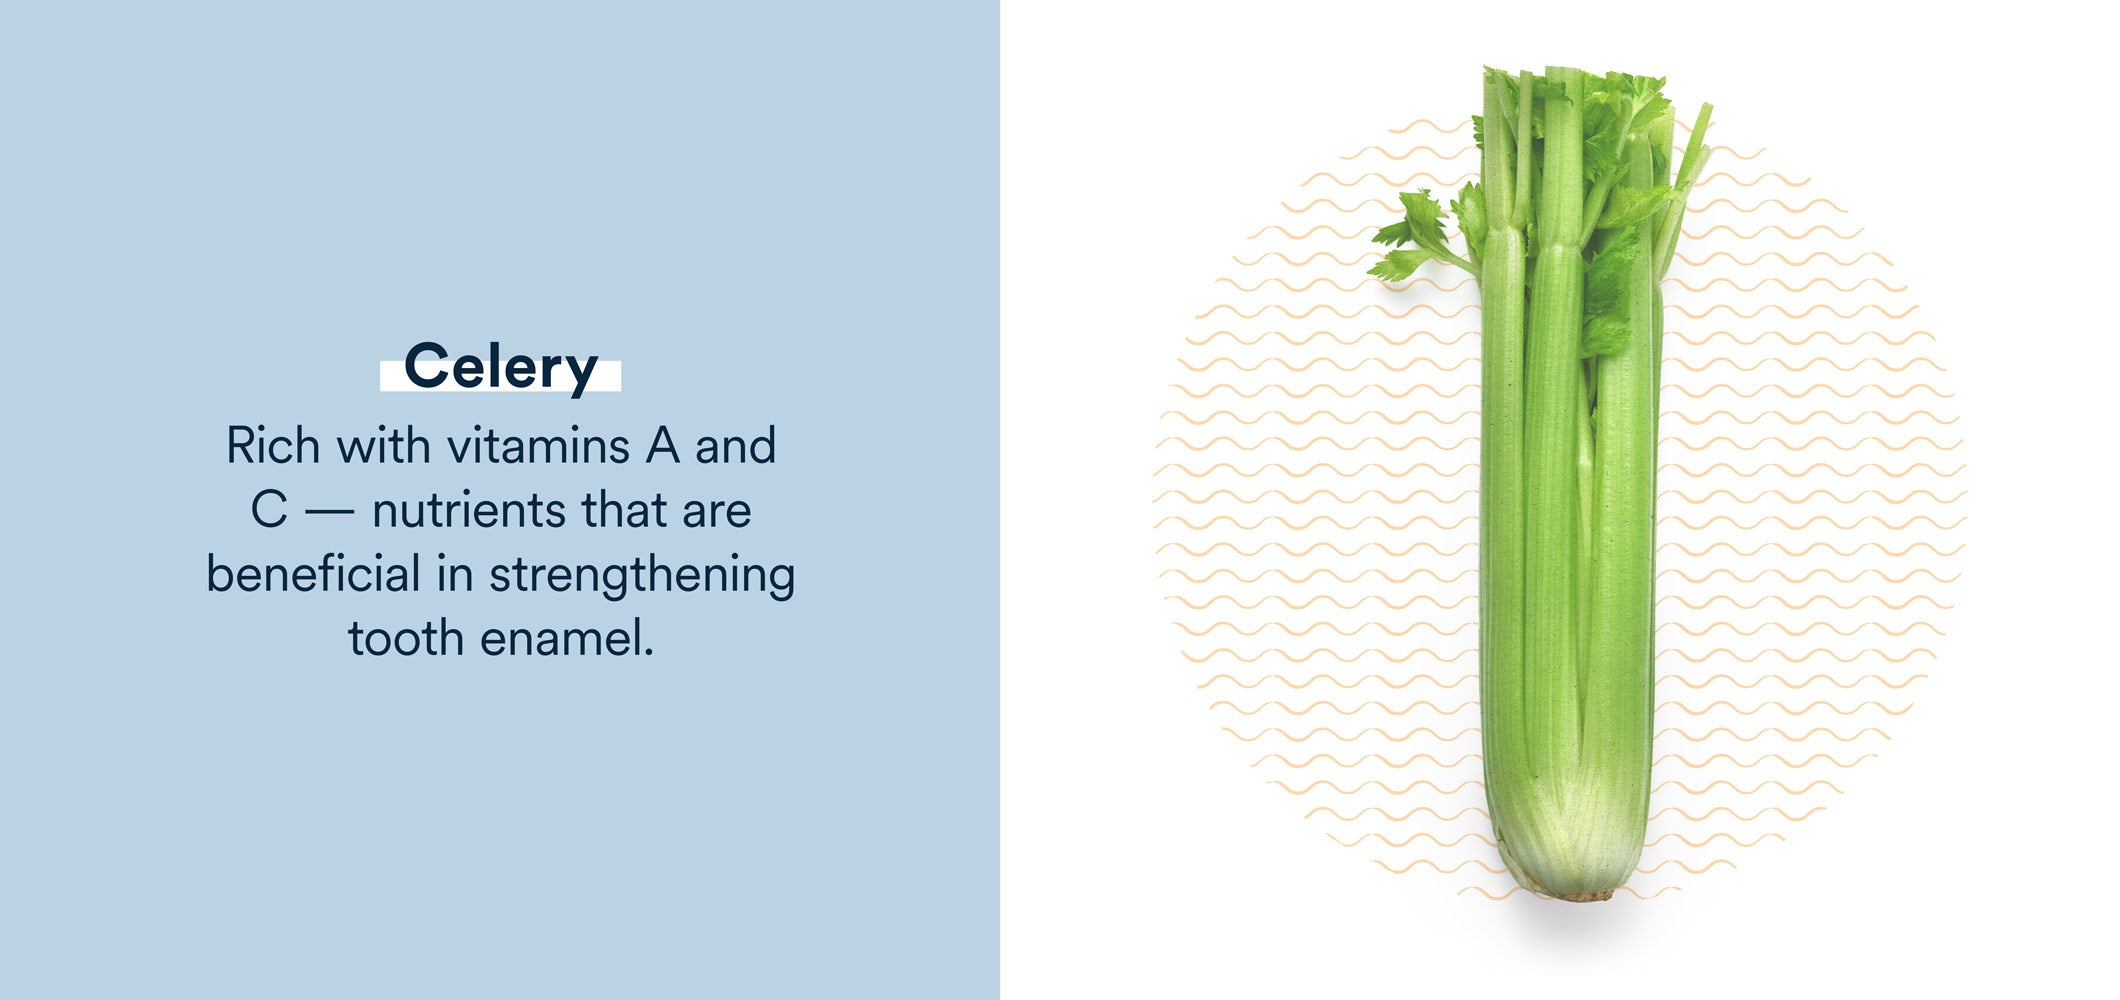 celery is rich in nutrients that can strengthen tooth enamel